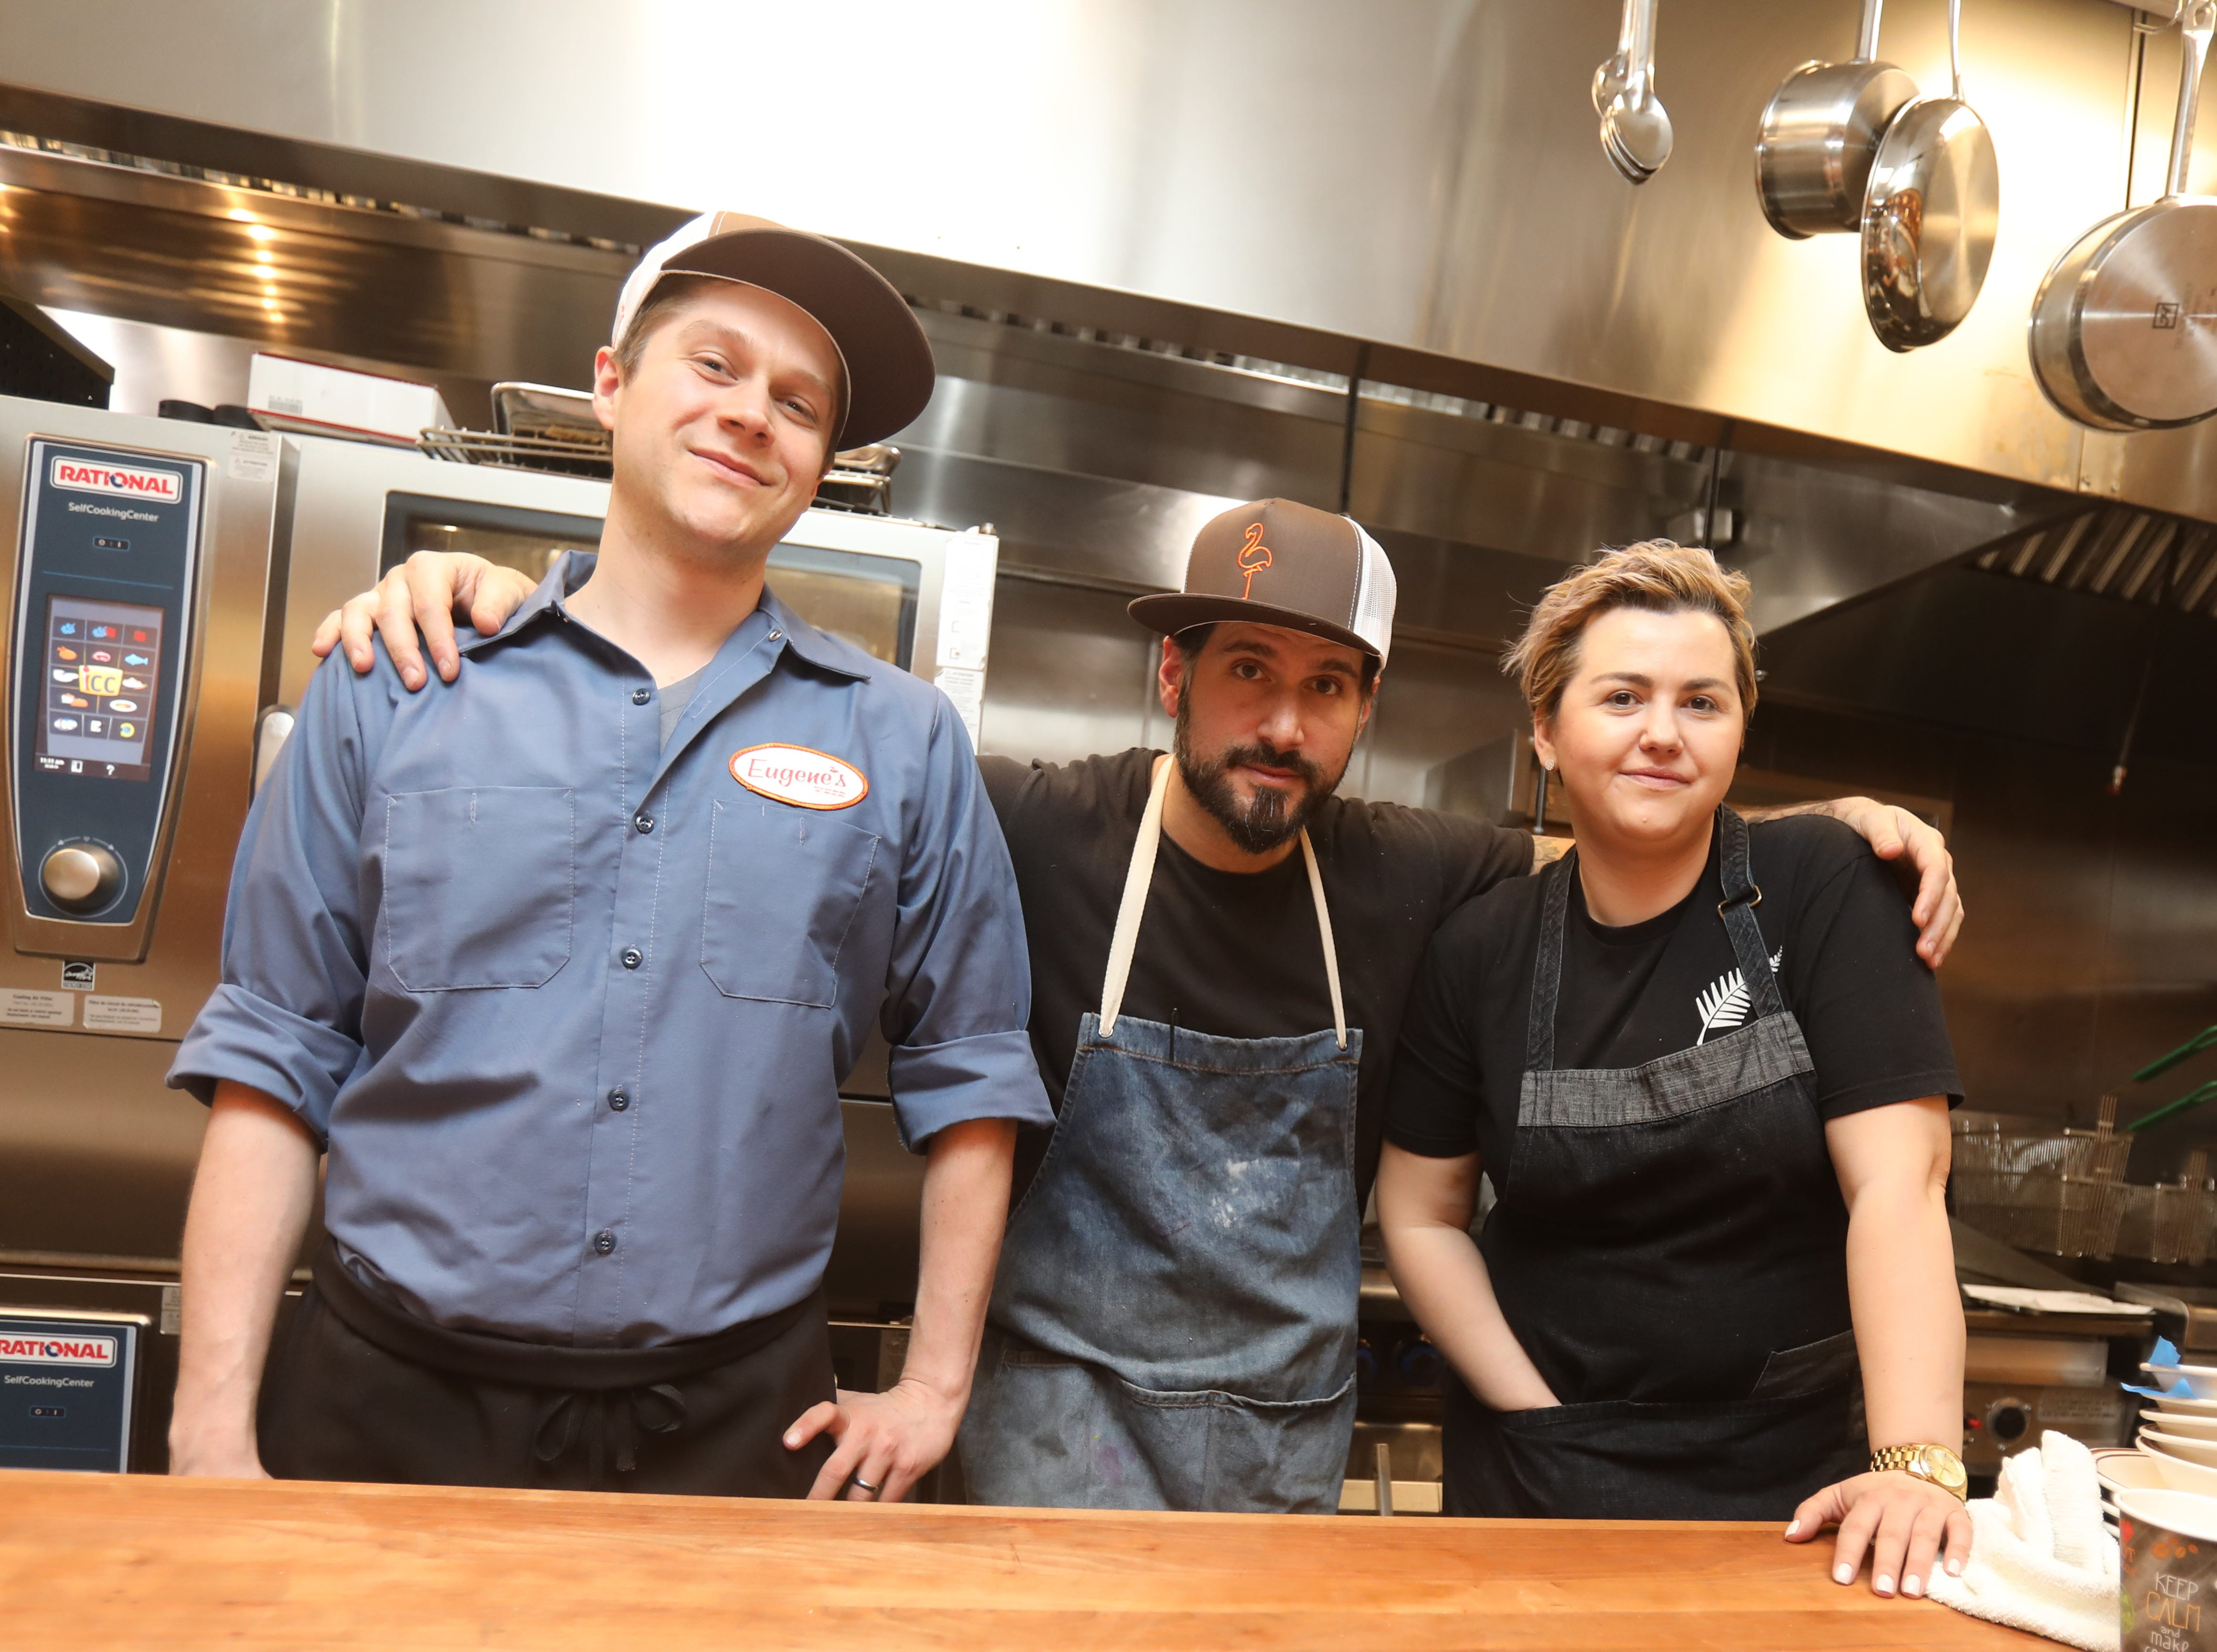 From left, John Poiarkoff, culinary director, Iulia Mahu, chef de cuisine, and David DiBari, owner are photographed at Eugene's in Port Chester March 29, 2019. The restaurant has a 70s-era basement vibe with wood panels, floral wallpaper, laminate counters, and their icon is a pink flamingo.